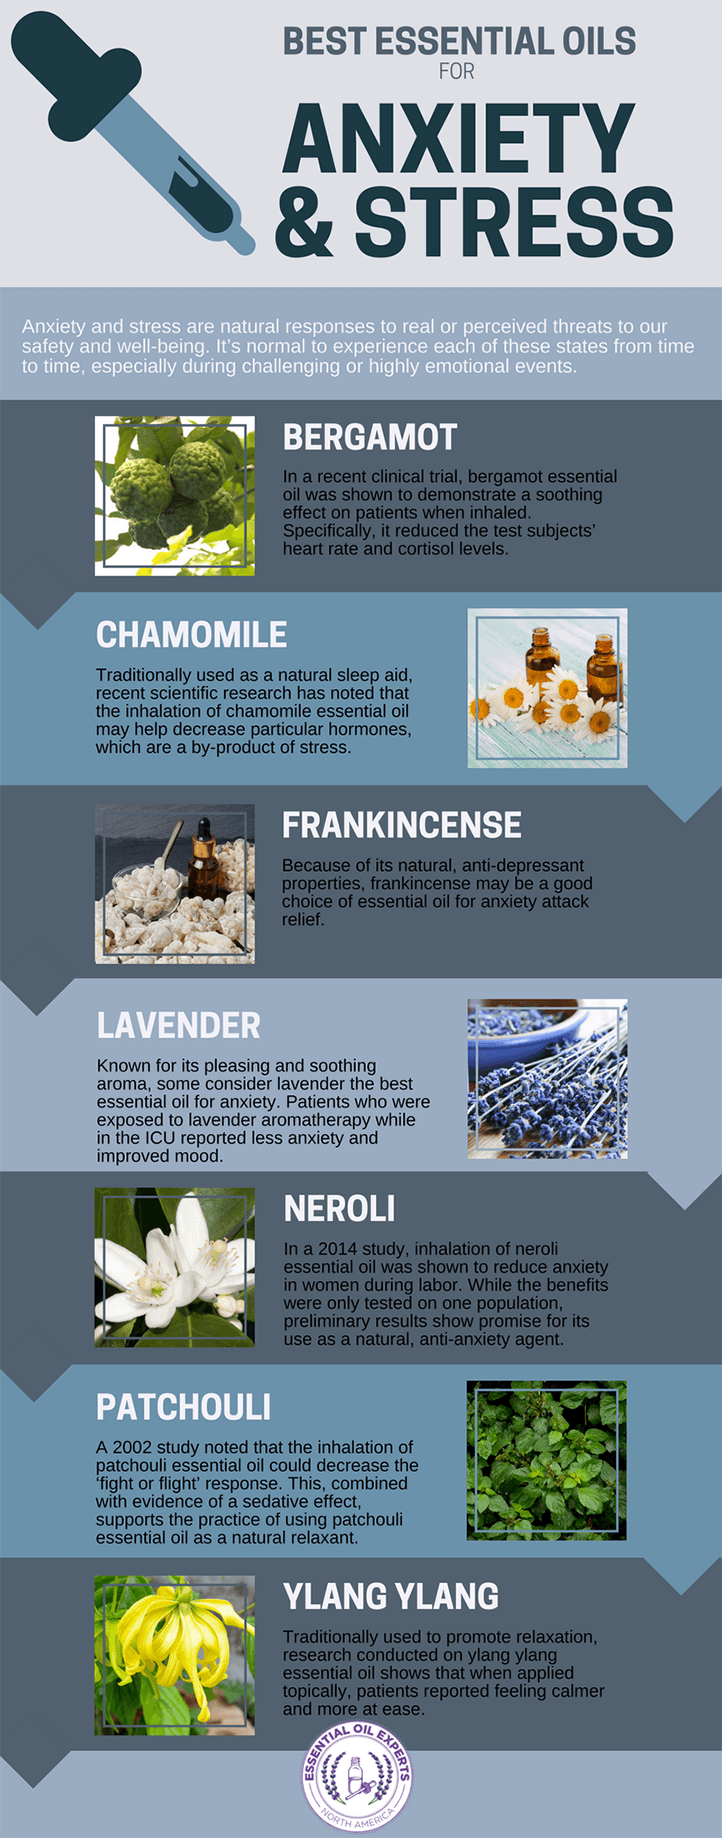 Best essential oils for anxiety and stress to pamper yourself